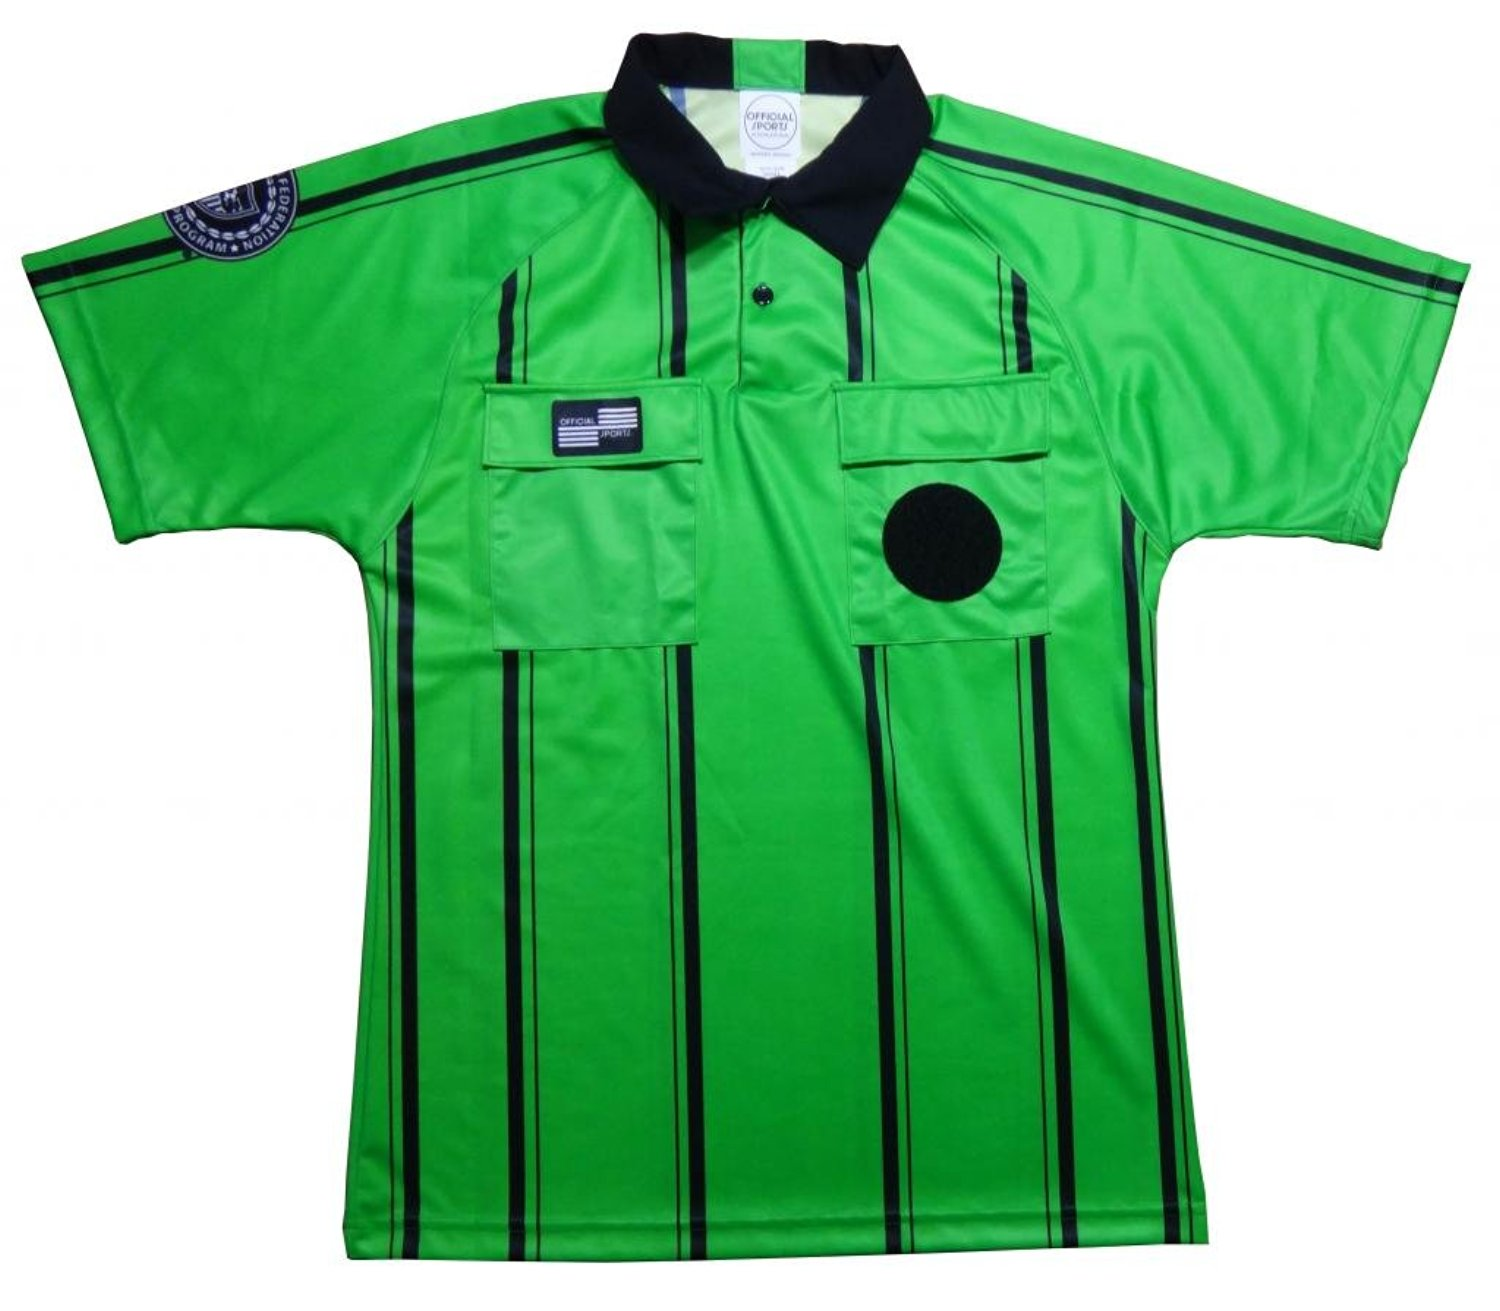 1b94333a9ce Get Quotations · Pro USSF Shortsleeve Referee Shirt